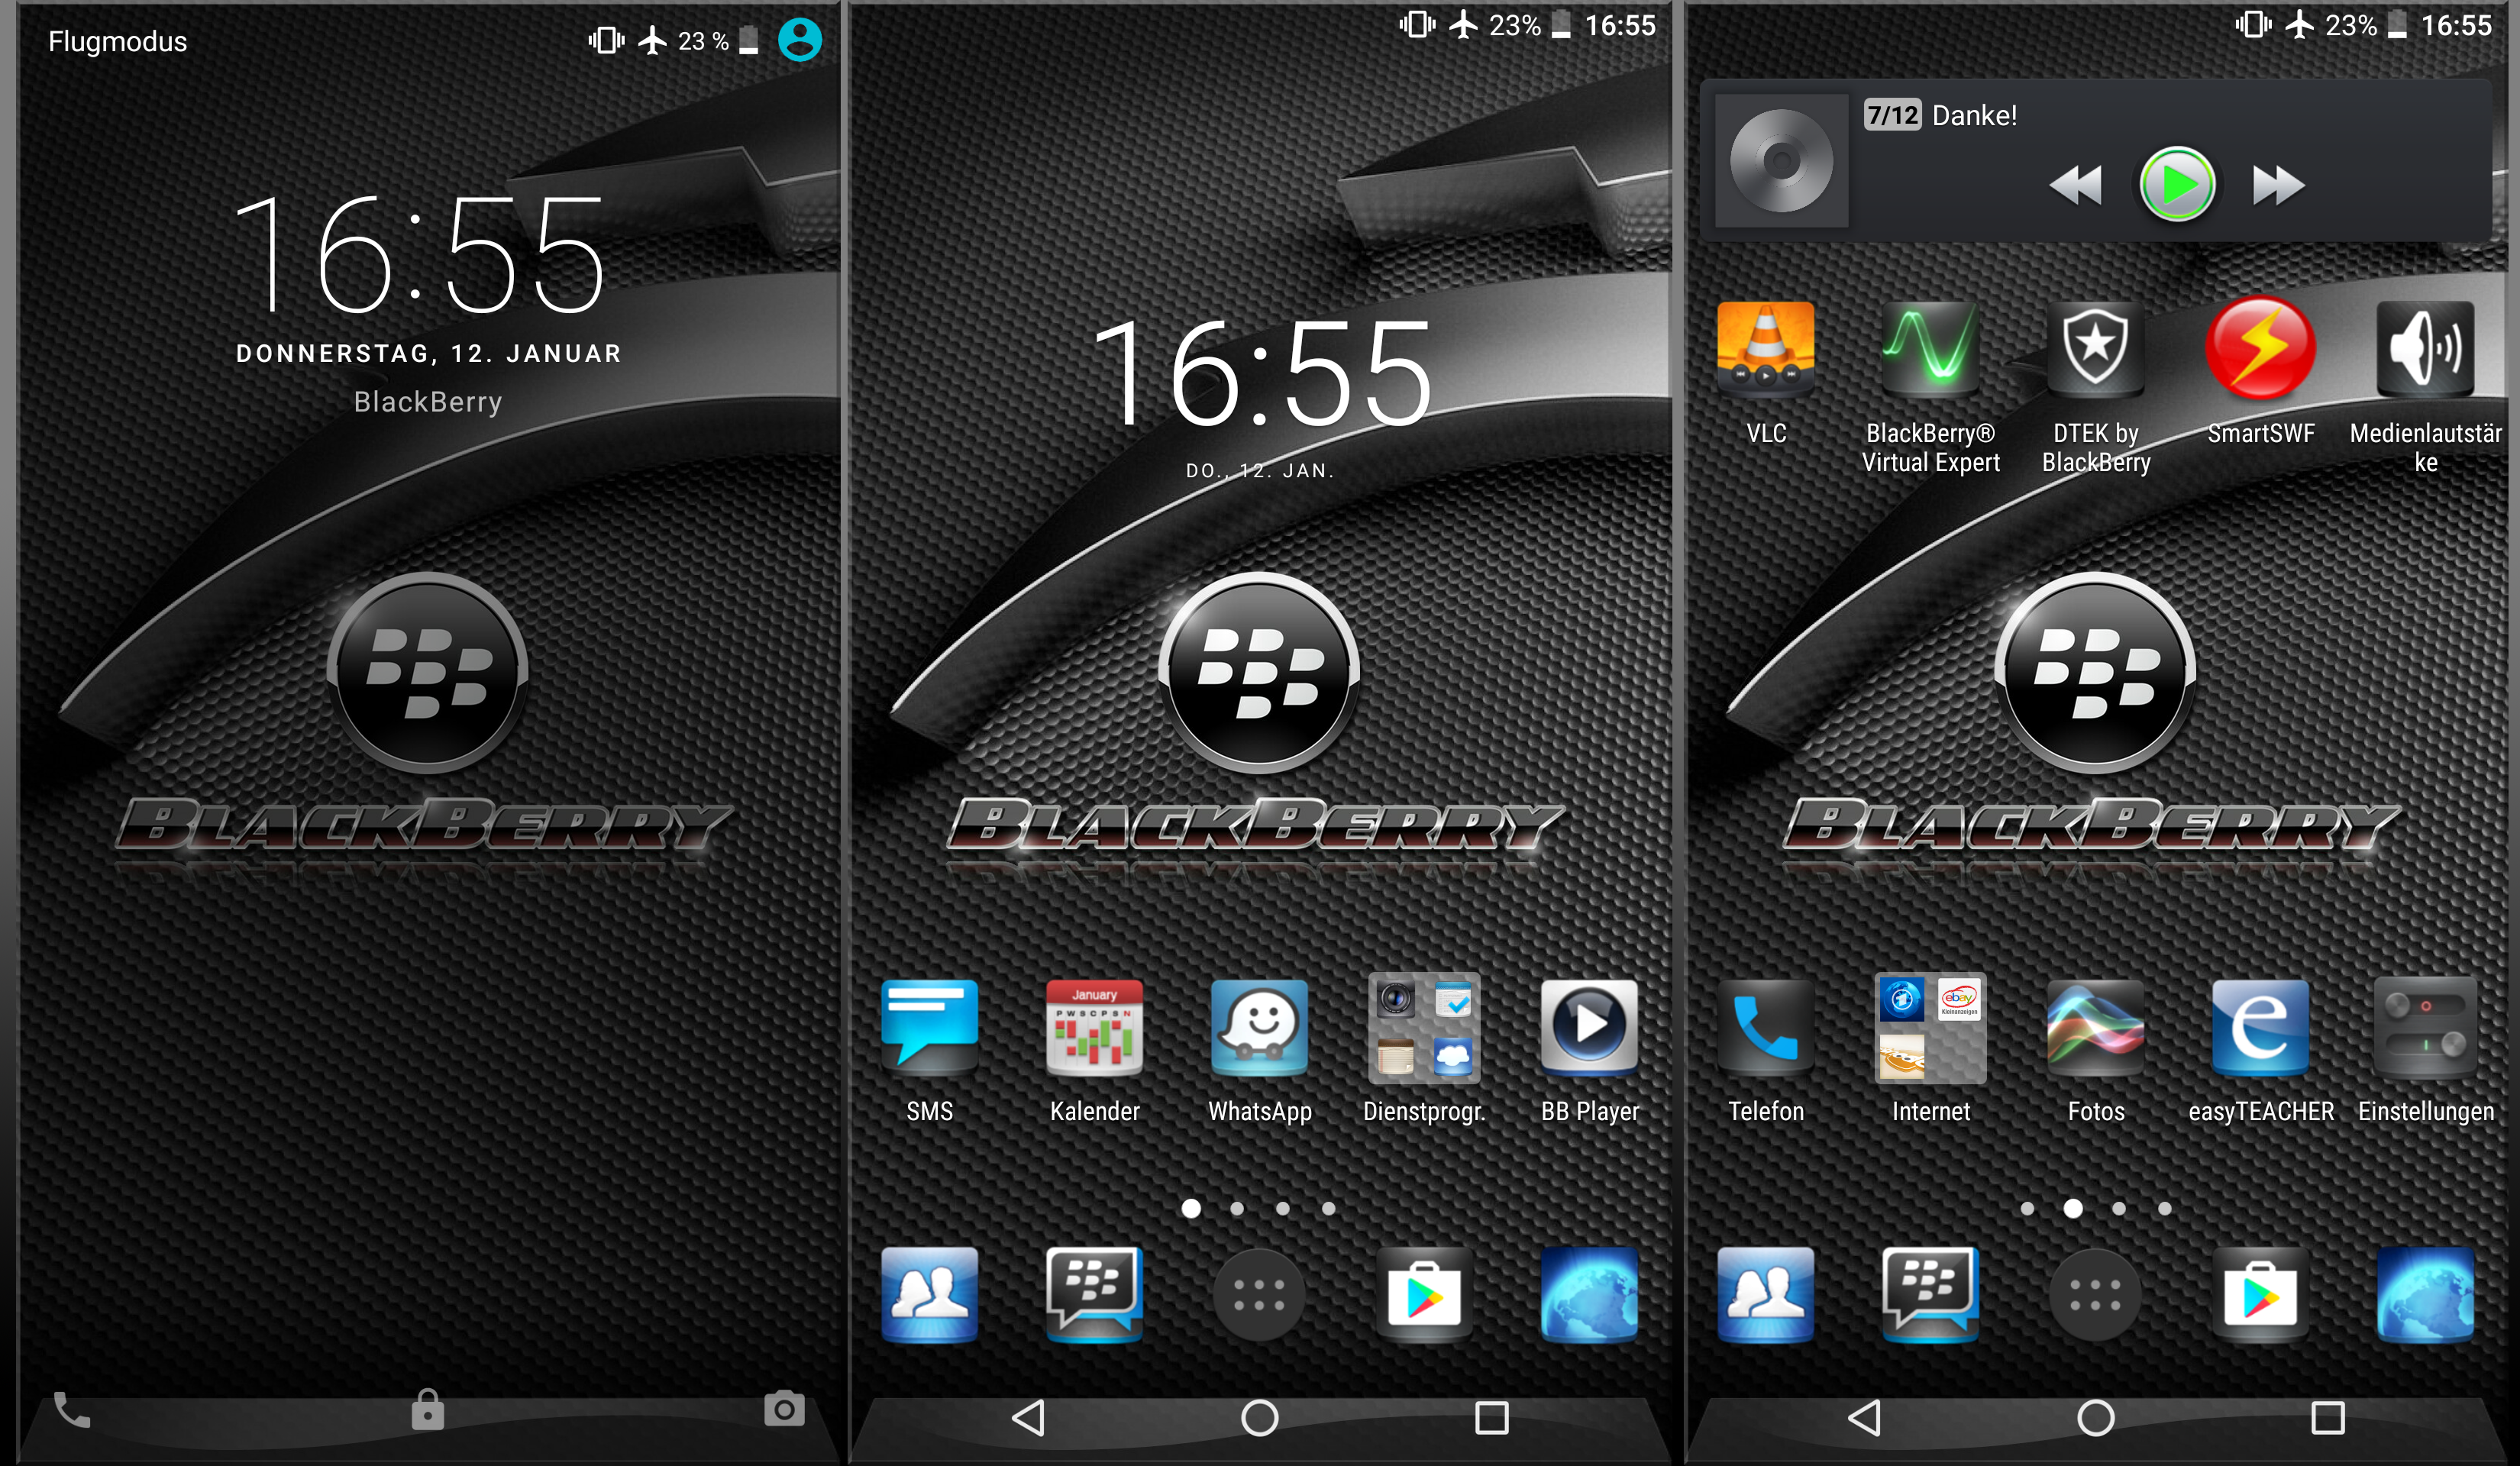 BlackBerry Key 2 Wallpapers: BlackBerry Wallpaper V2 For DTEK50 And DTEK60 By